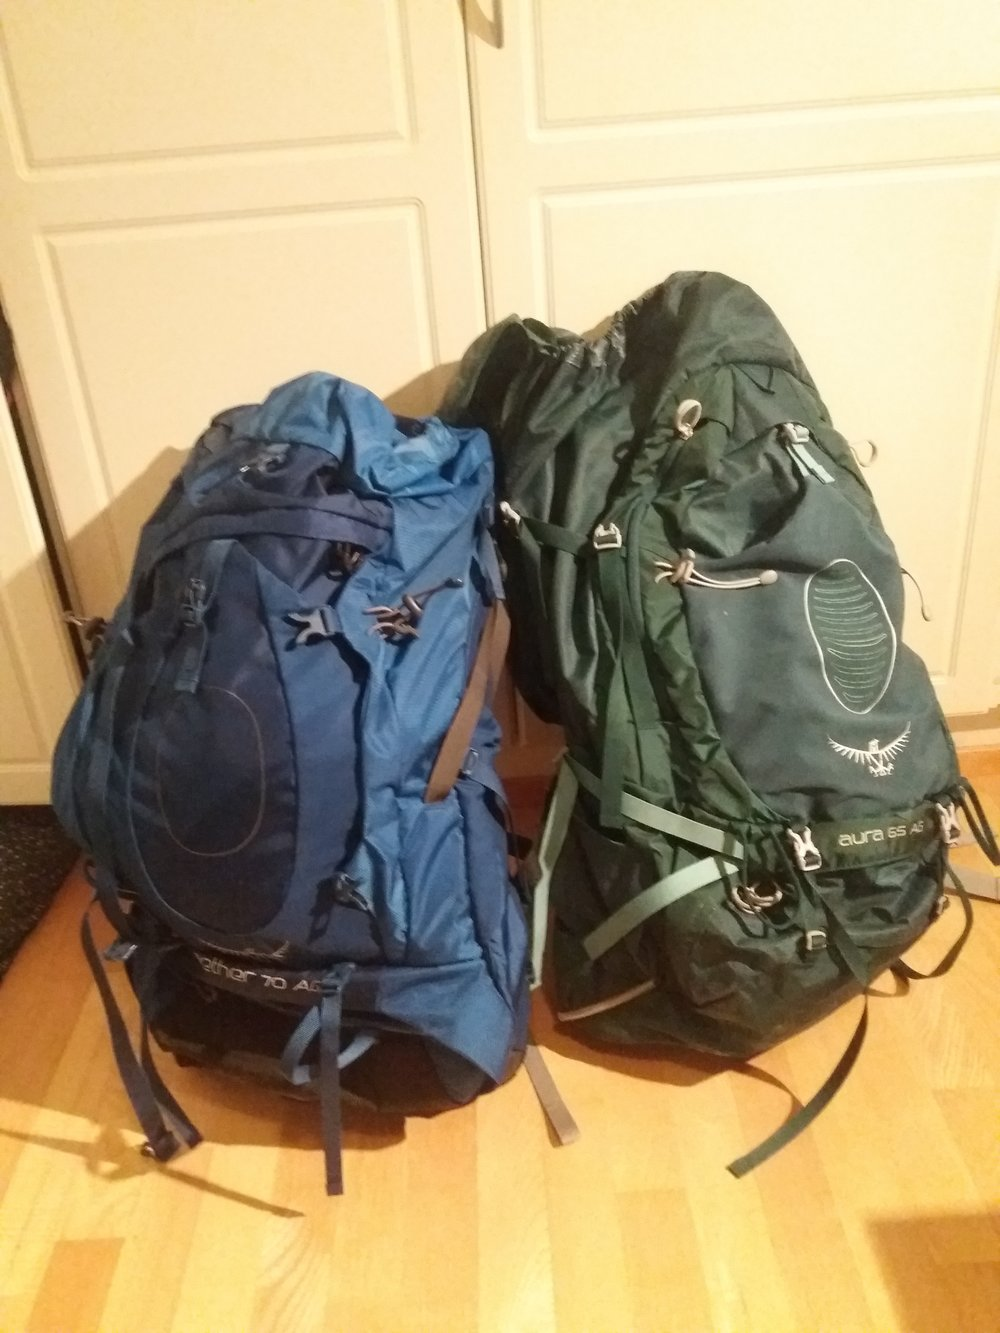 wE BOUGHT THESE AT FIRST. wE TRIED ON SEVERAL DIFFERENT BACKPACKS, BECAUSE ESPECIALLY WHILE HIKING BACKPACK NEEDS TO suit well. we decided to choose these; Osprey aura 65 liters for jenna and osprey aether 70 liters for eemeli. everything should fit in these.